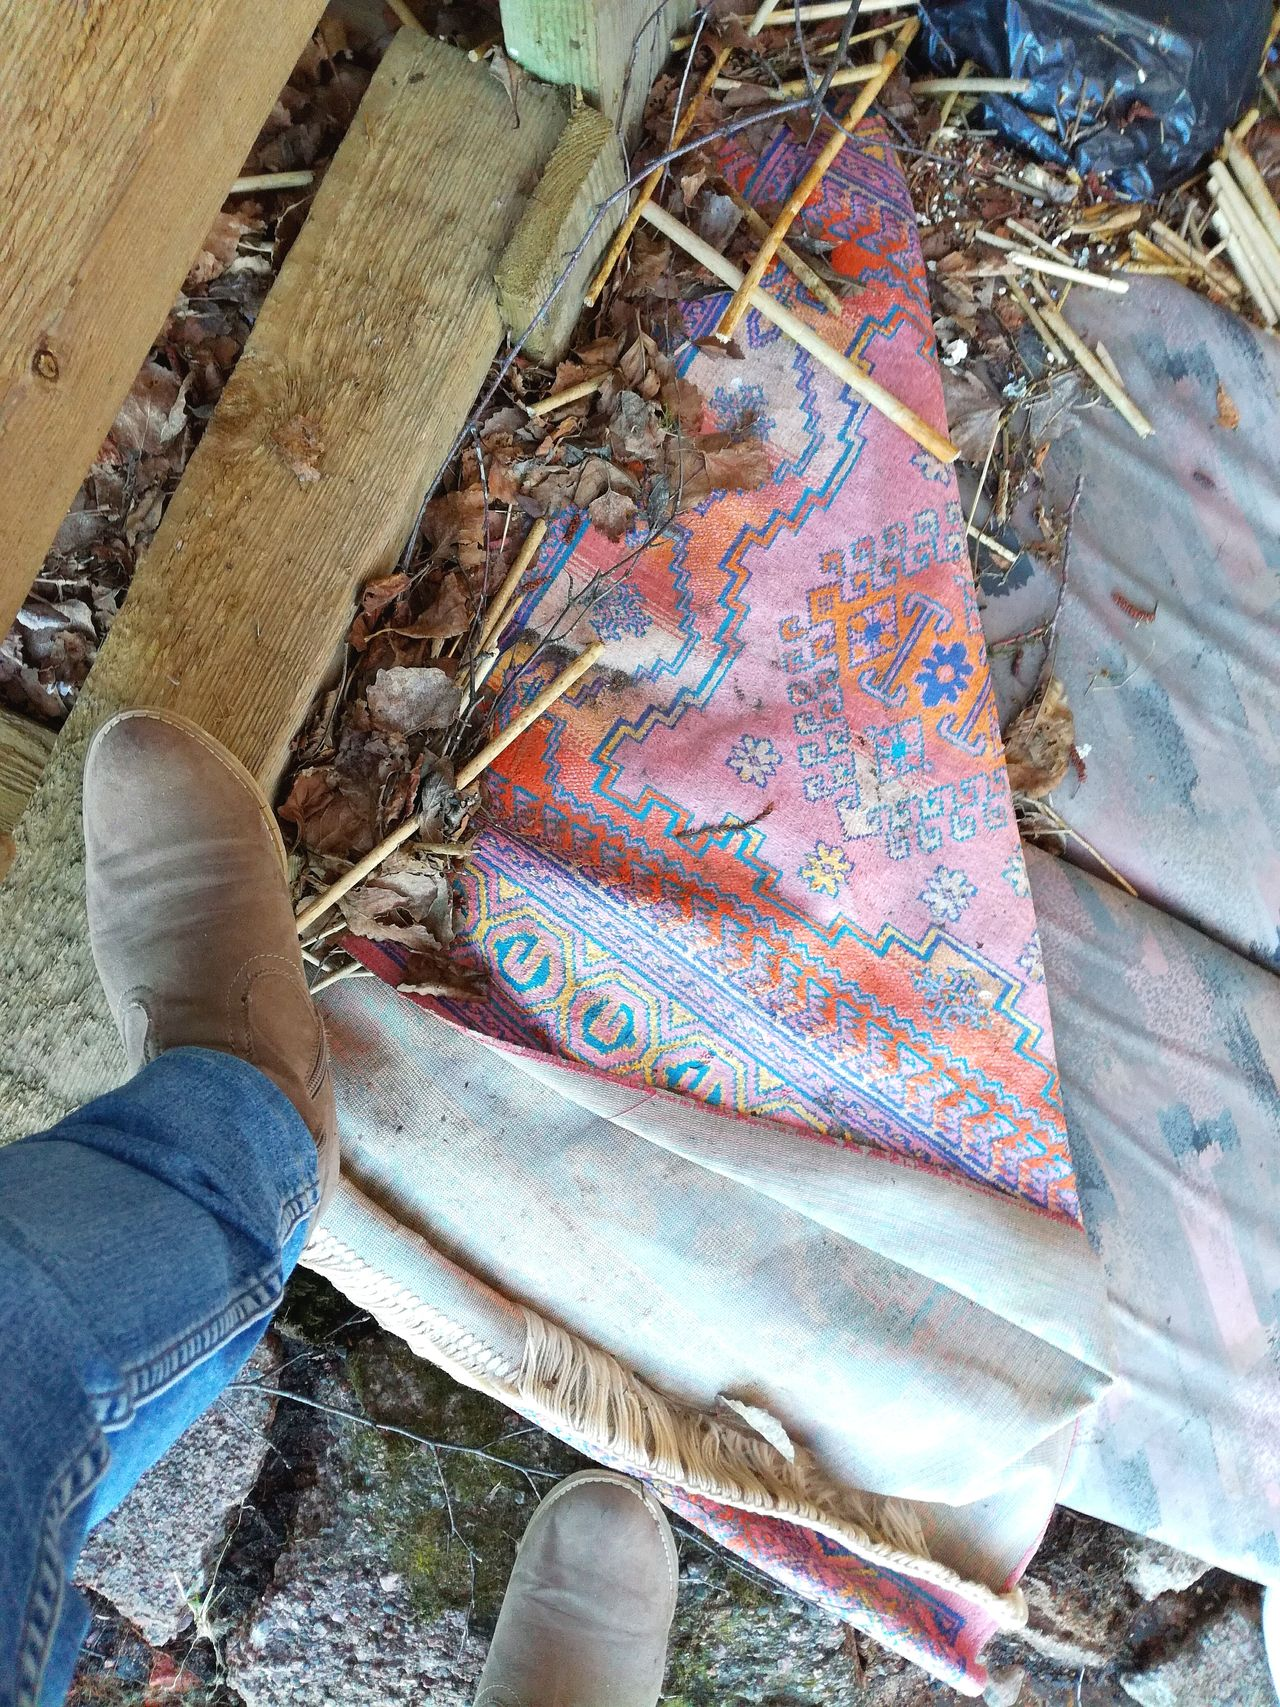 High Angle View Low Section Human Leg Jeans One Person Fabric Textile Outdoors Carpet Abandoned Places Pastel Colors Feet Boots